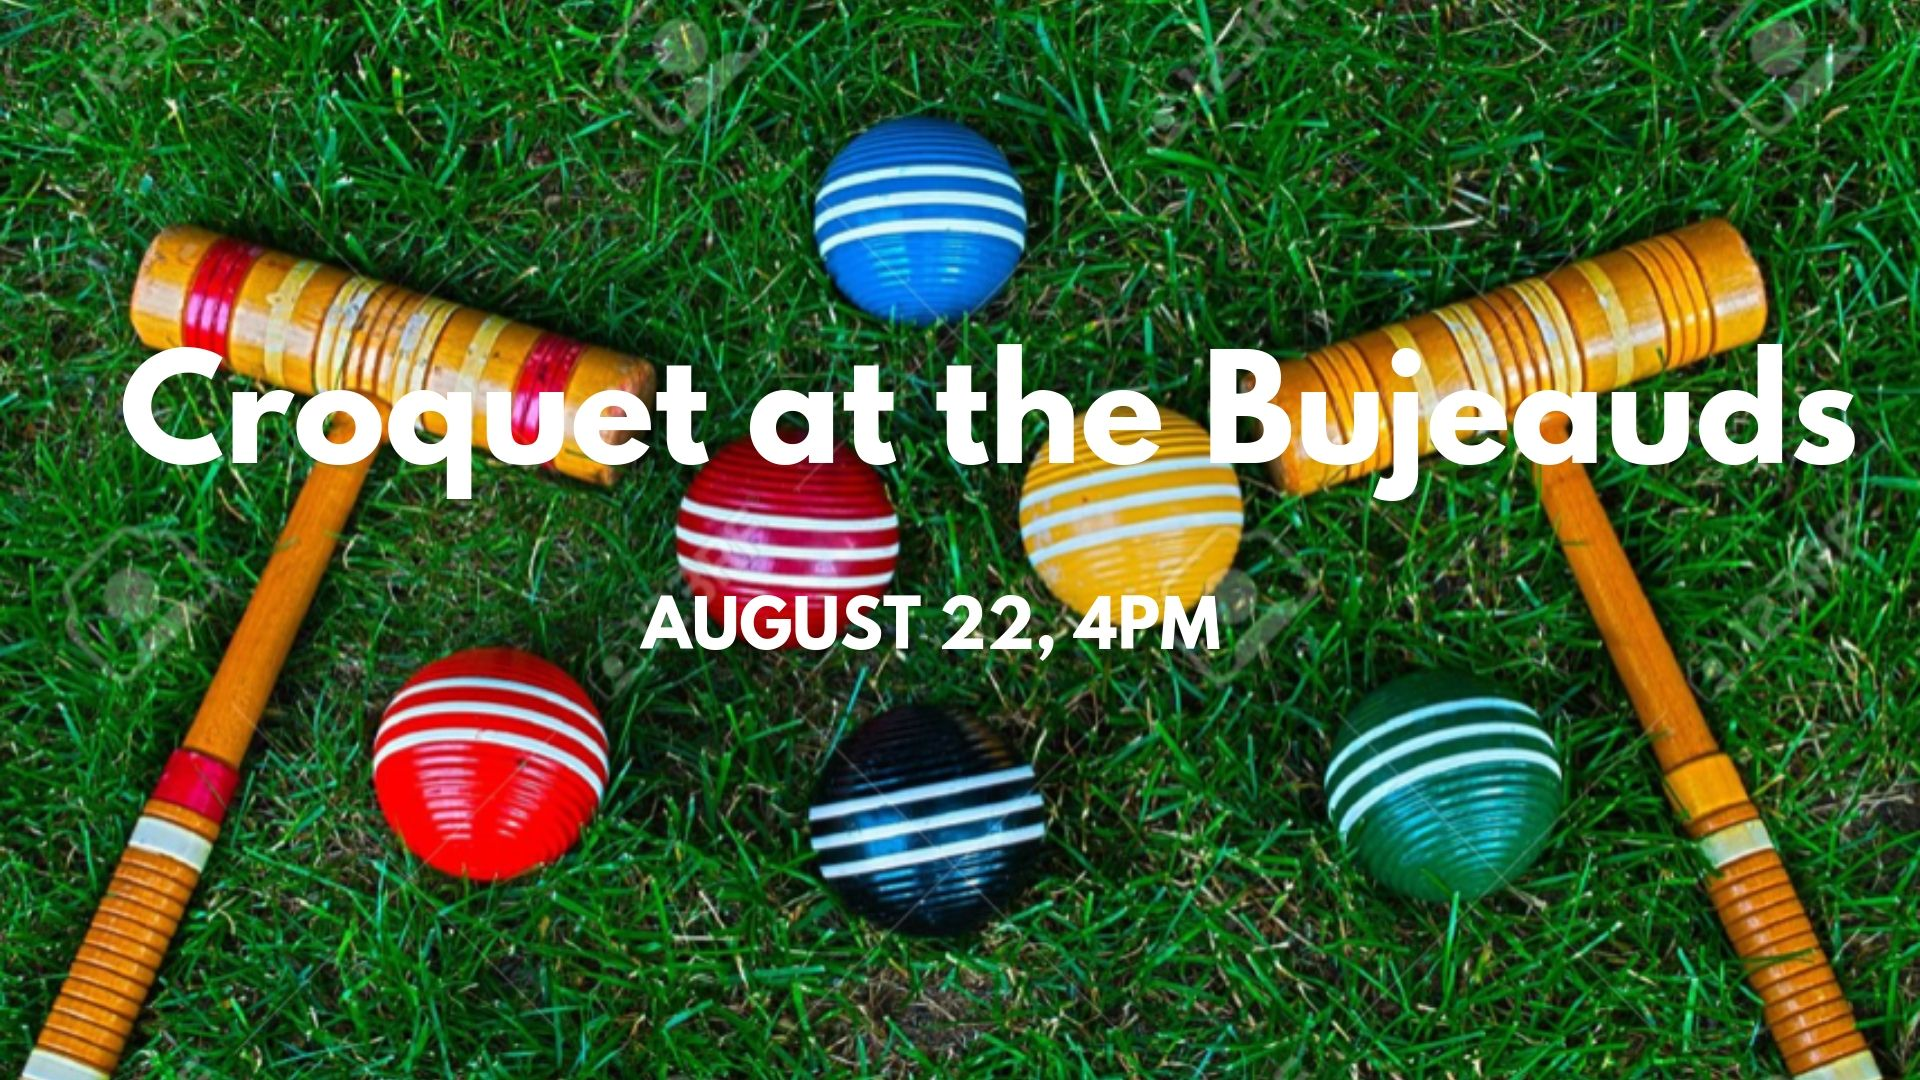 WHETHER YOU KNOW THE GAME OR NOT, CROQUET IS A FUN AND EASY GAME TO LEARN. JOIN IN FOR AN AFTERNOON OF CROQUET WITH SOME ENTHUSIASTS WHO WILL TEACH YOU ALL YOU NEED TO KNOW ABOUT THE GAME! FOR MORE DETAILS AND TO RSVP VISIT OUR FACEBOOK EVENT.  CLICK HERE  TO GO TO OUR PAGE.